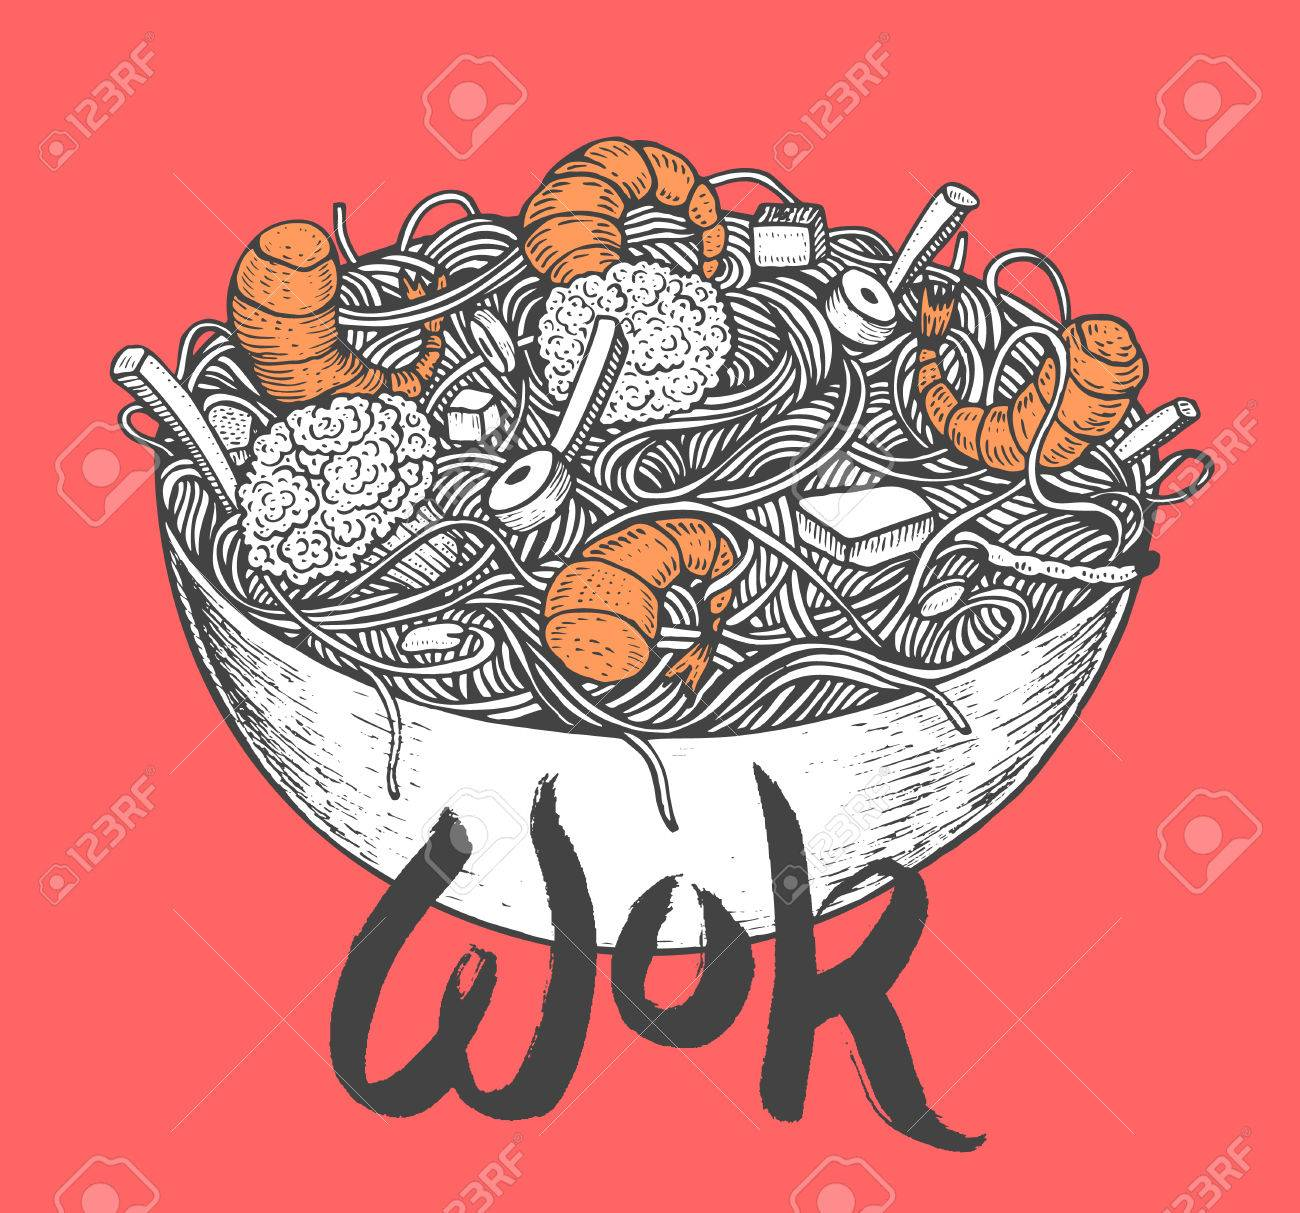 Asian fastfood with noodles shrimps, pepper, vegetables in a plate. Hand drawn vector illustration of tasty food doodle style Foto de archivo - 75105665